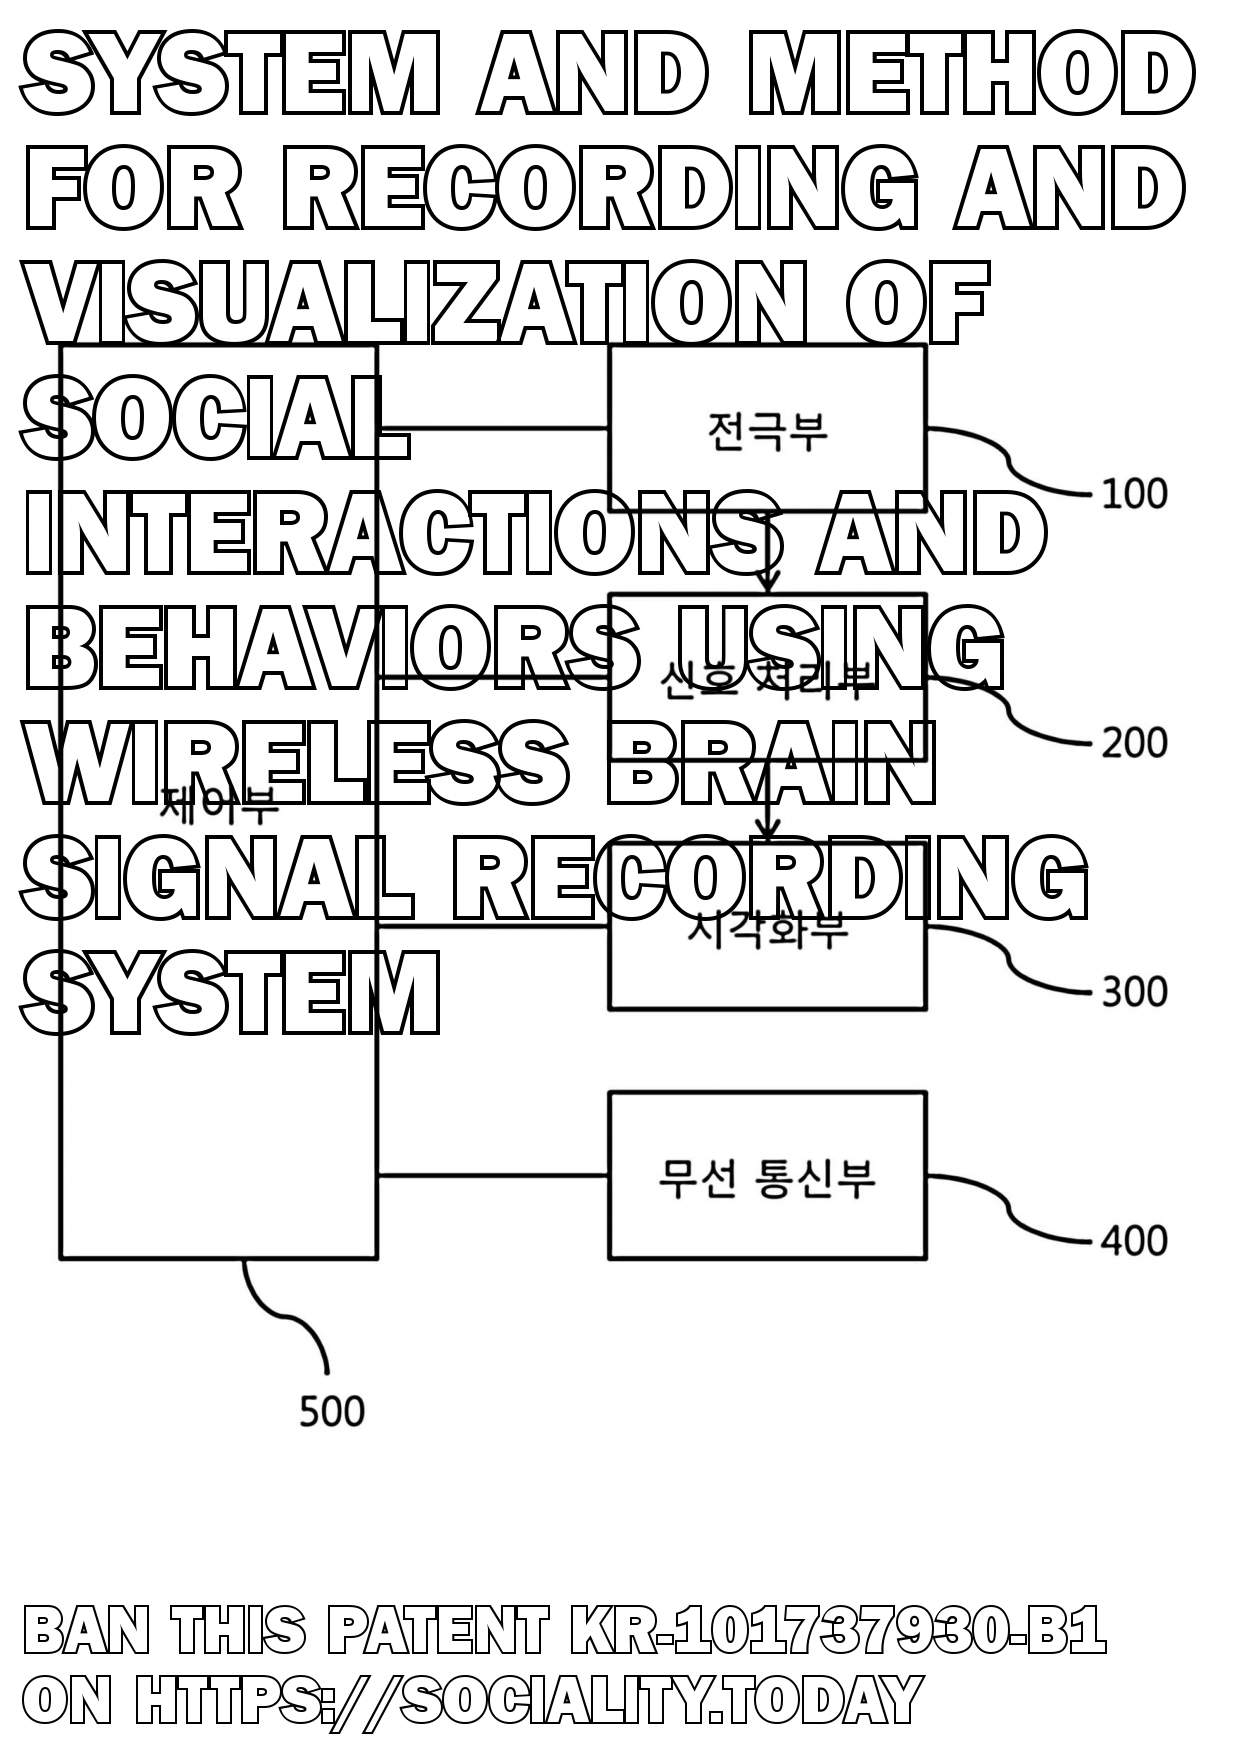 System and method for recording and visualization of social interactions and behaviors using wireless brain signal recording system  - KR-101737930-B1